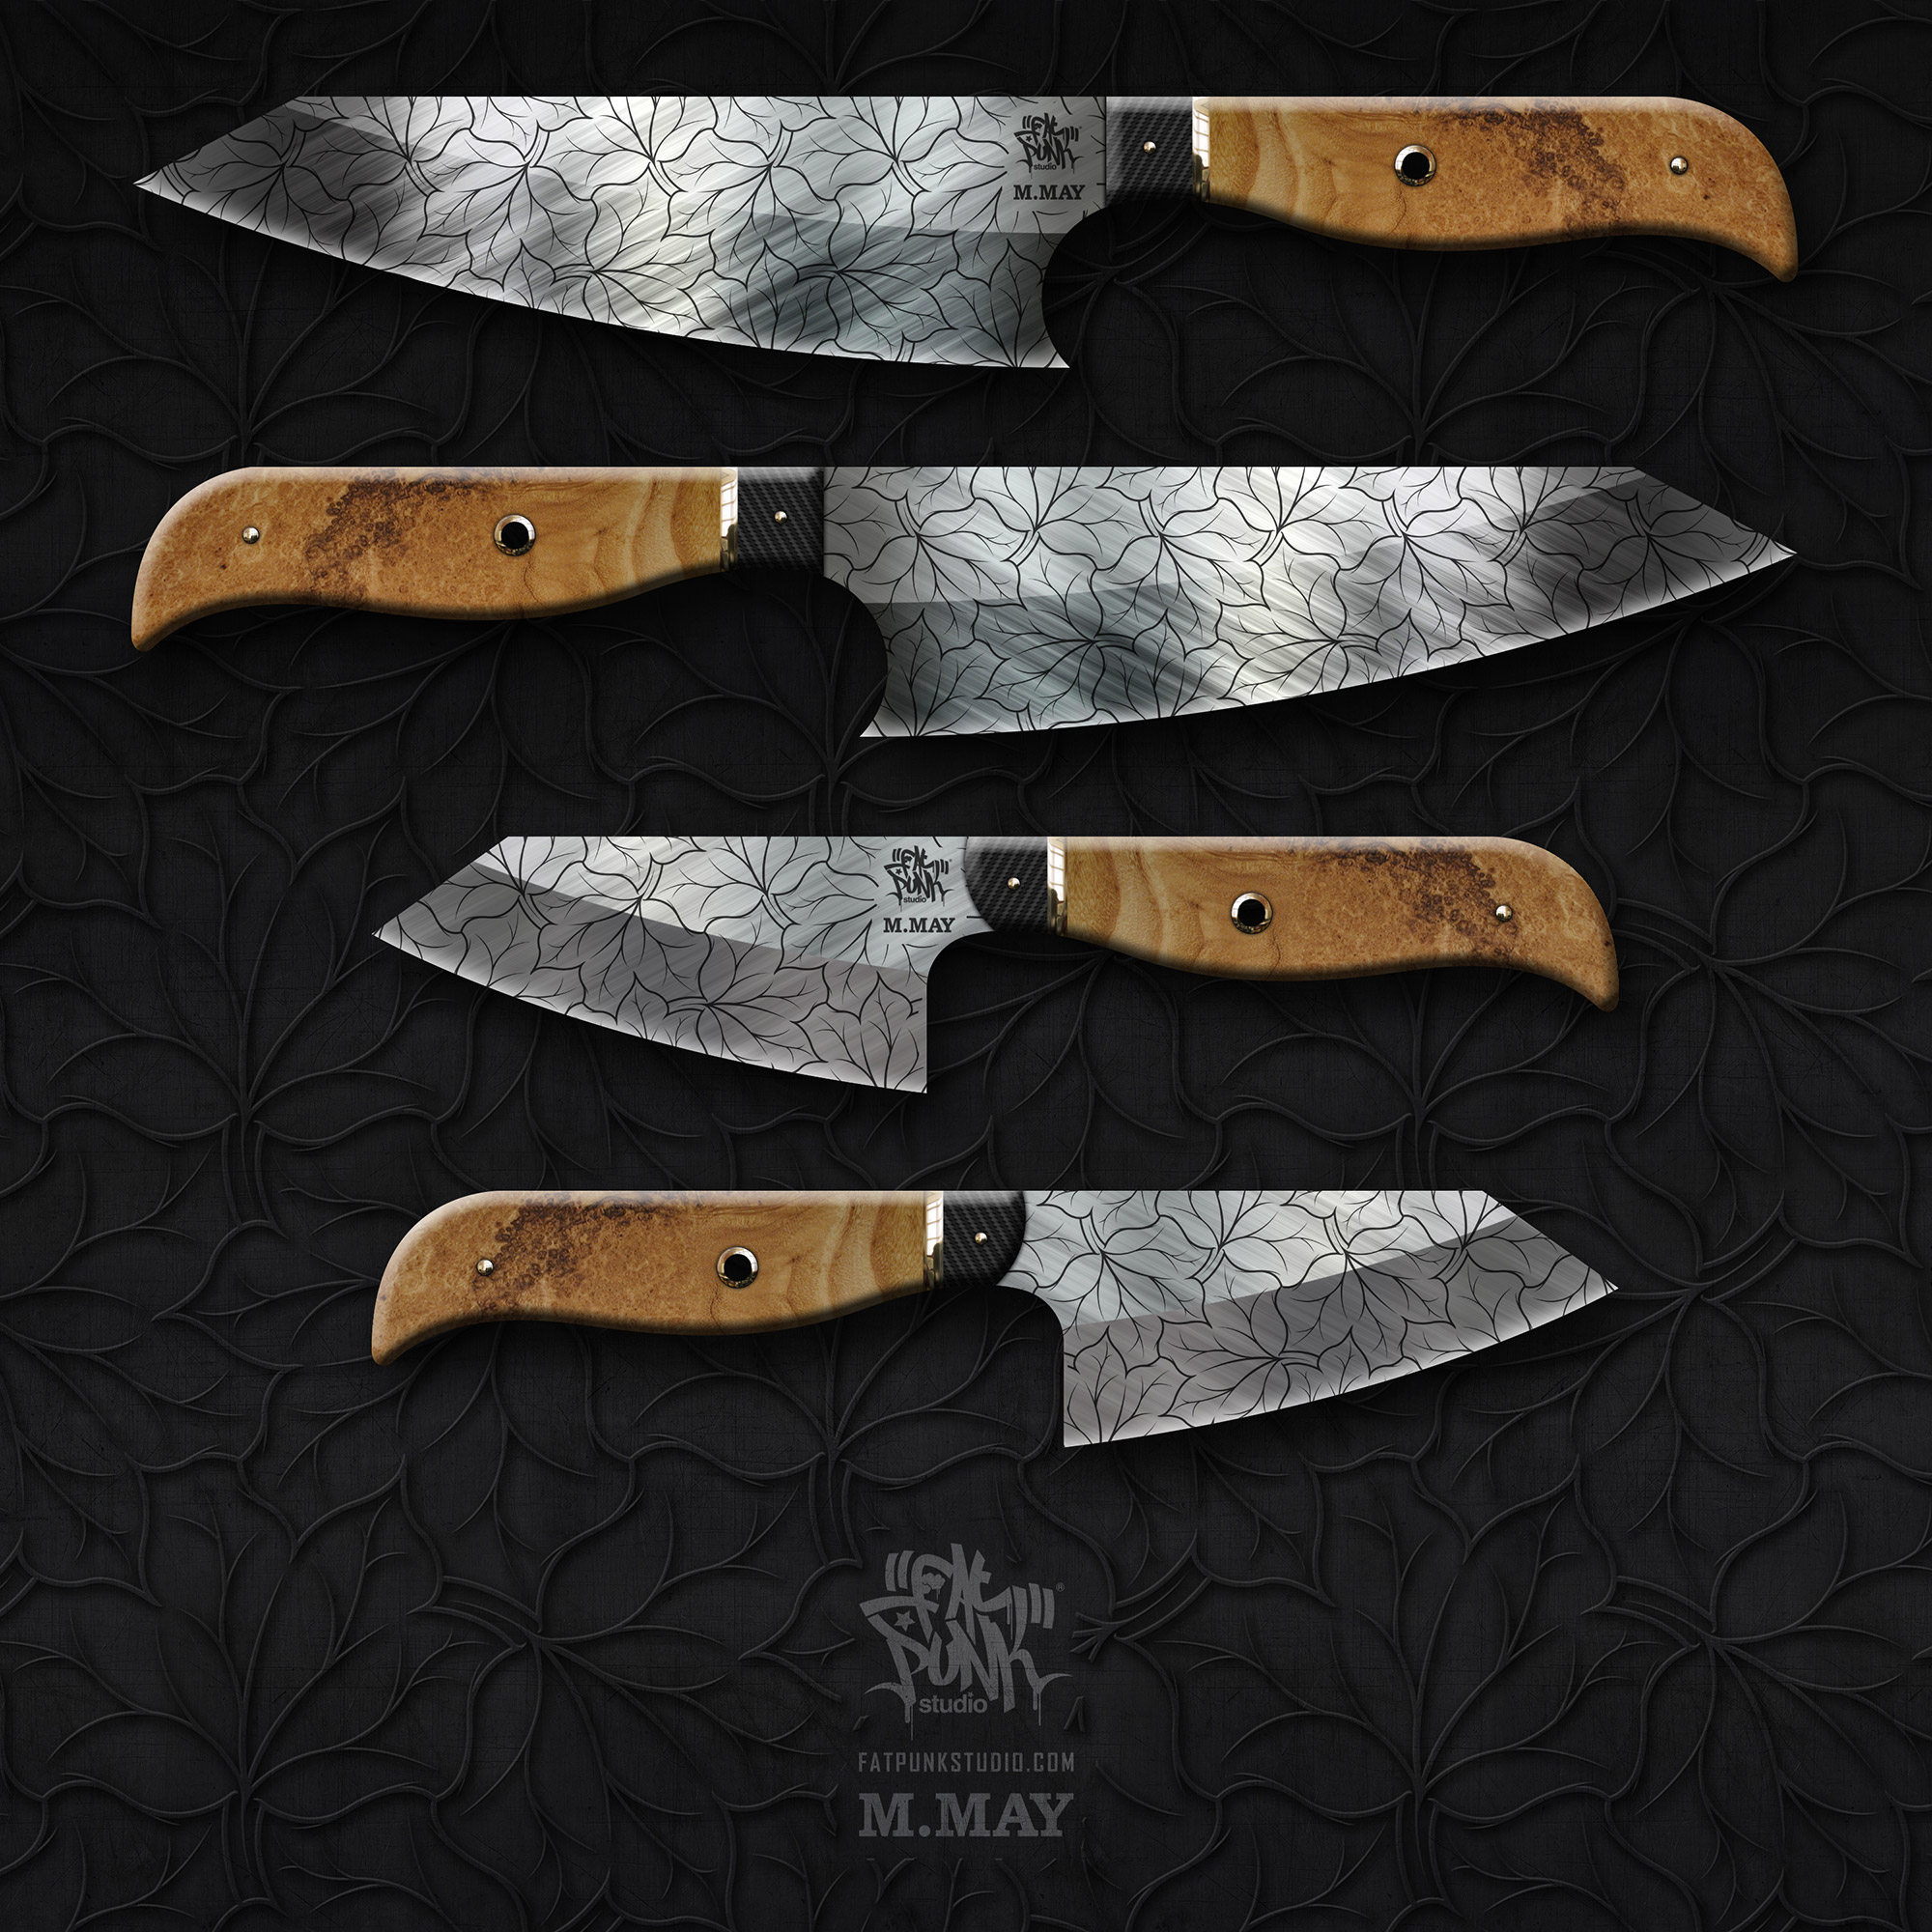 leaves-hand-made-santoku-chefs-knife-fat-punk-studio-michael-may-knives-02